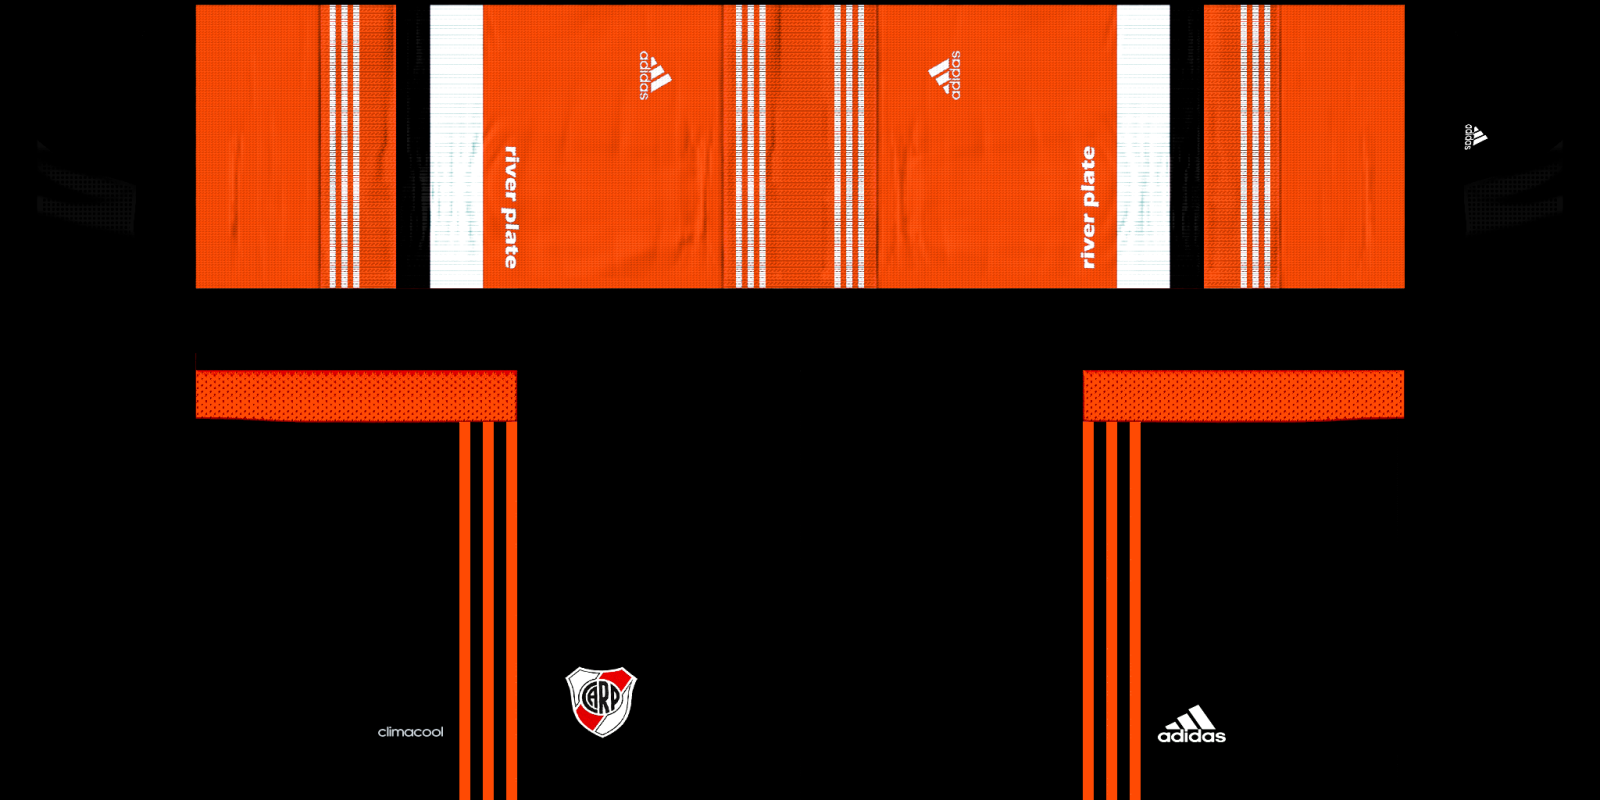 FULL CAMISETAS DE RIVER 2016 (TODAS) Wtvgqe